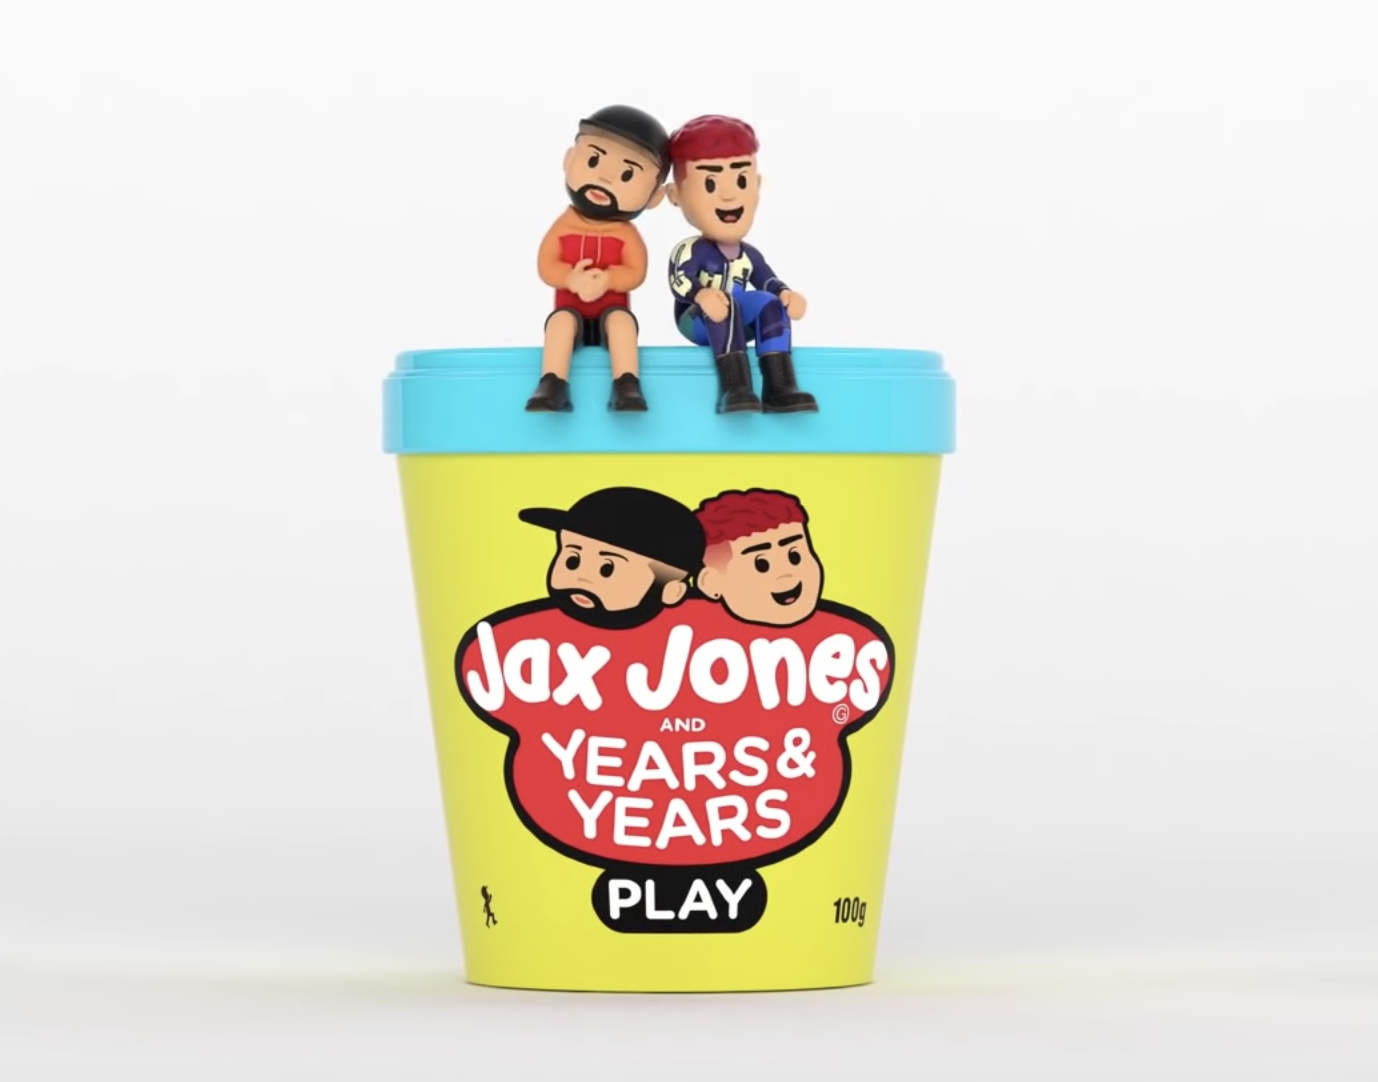 Jax Jones ft. Years & Years - Play